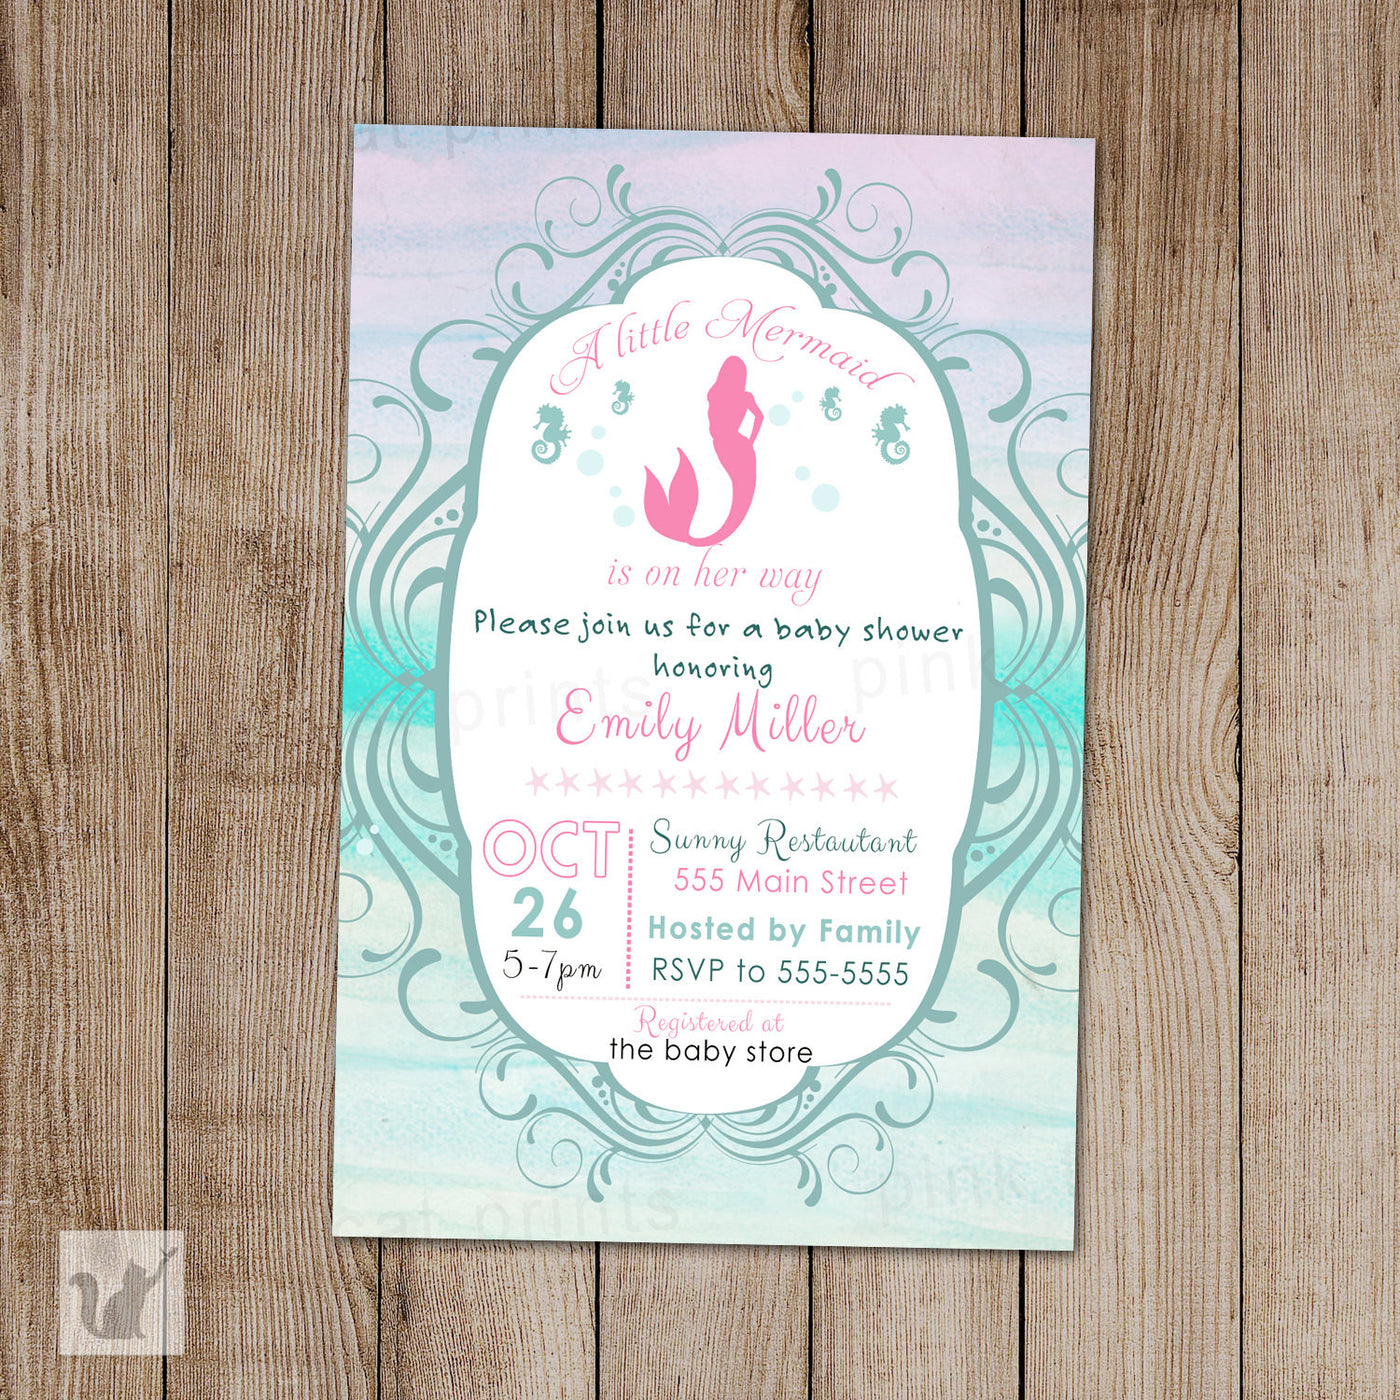 Little Mermaid Invitation Baby Girl Shower Watercolor Pink The Cat